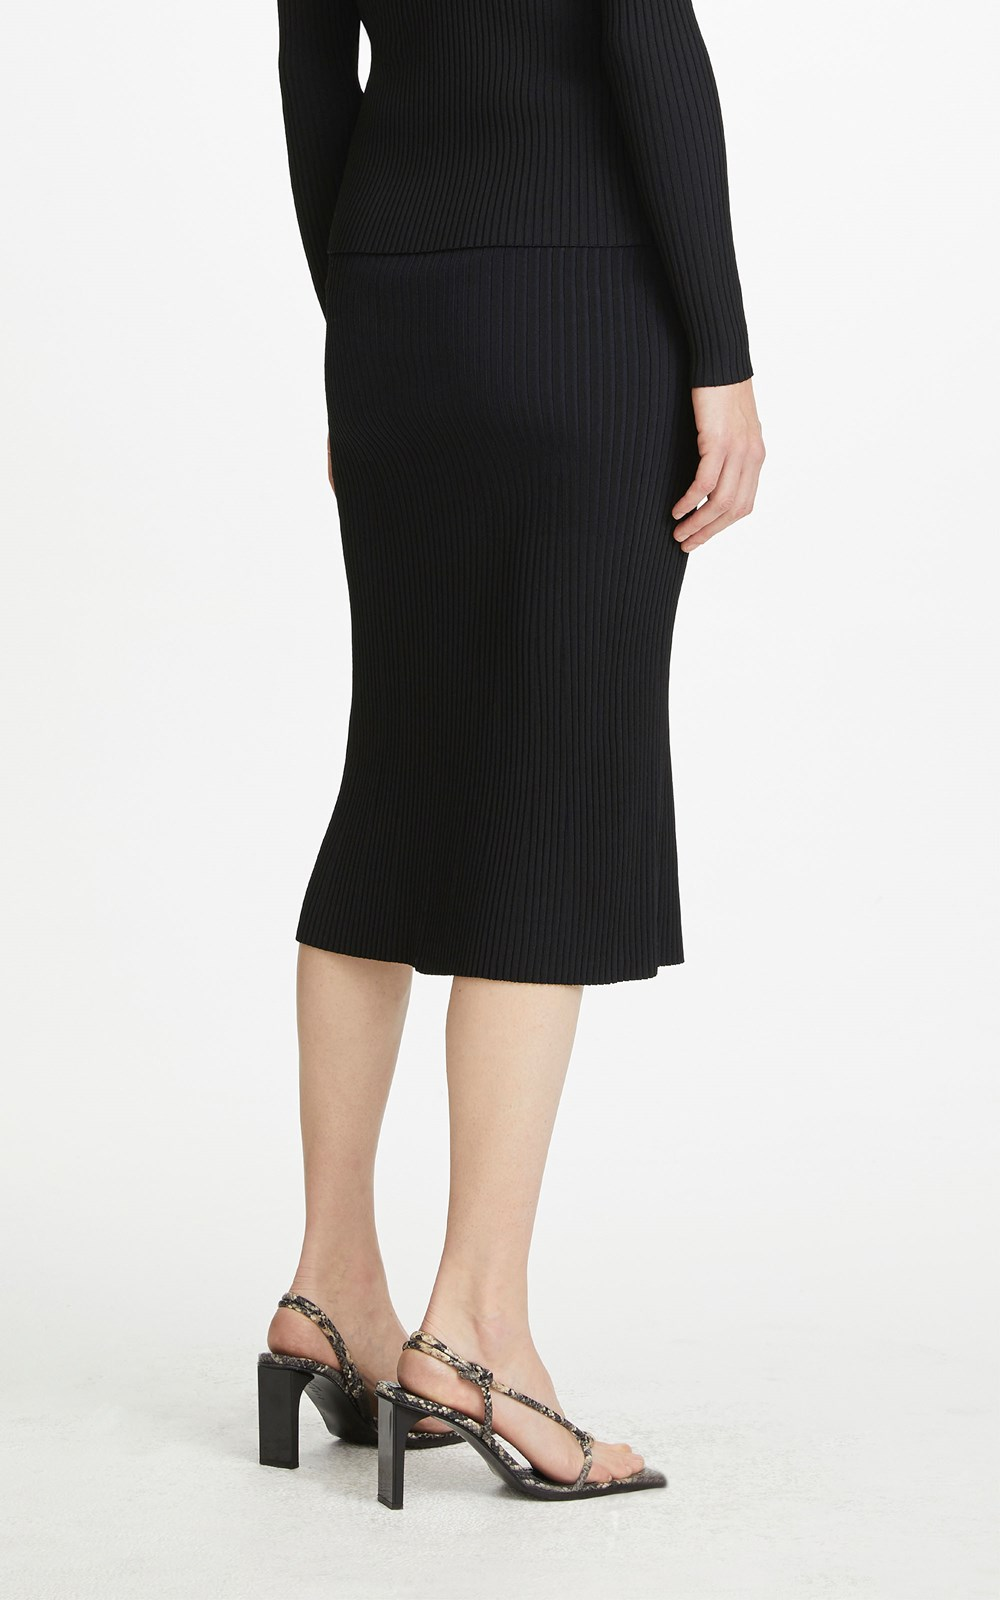 Knitwear | CABLE TWIST SKIRT